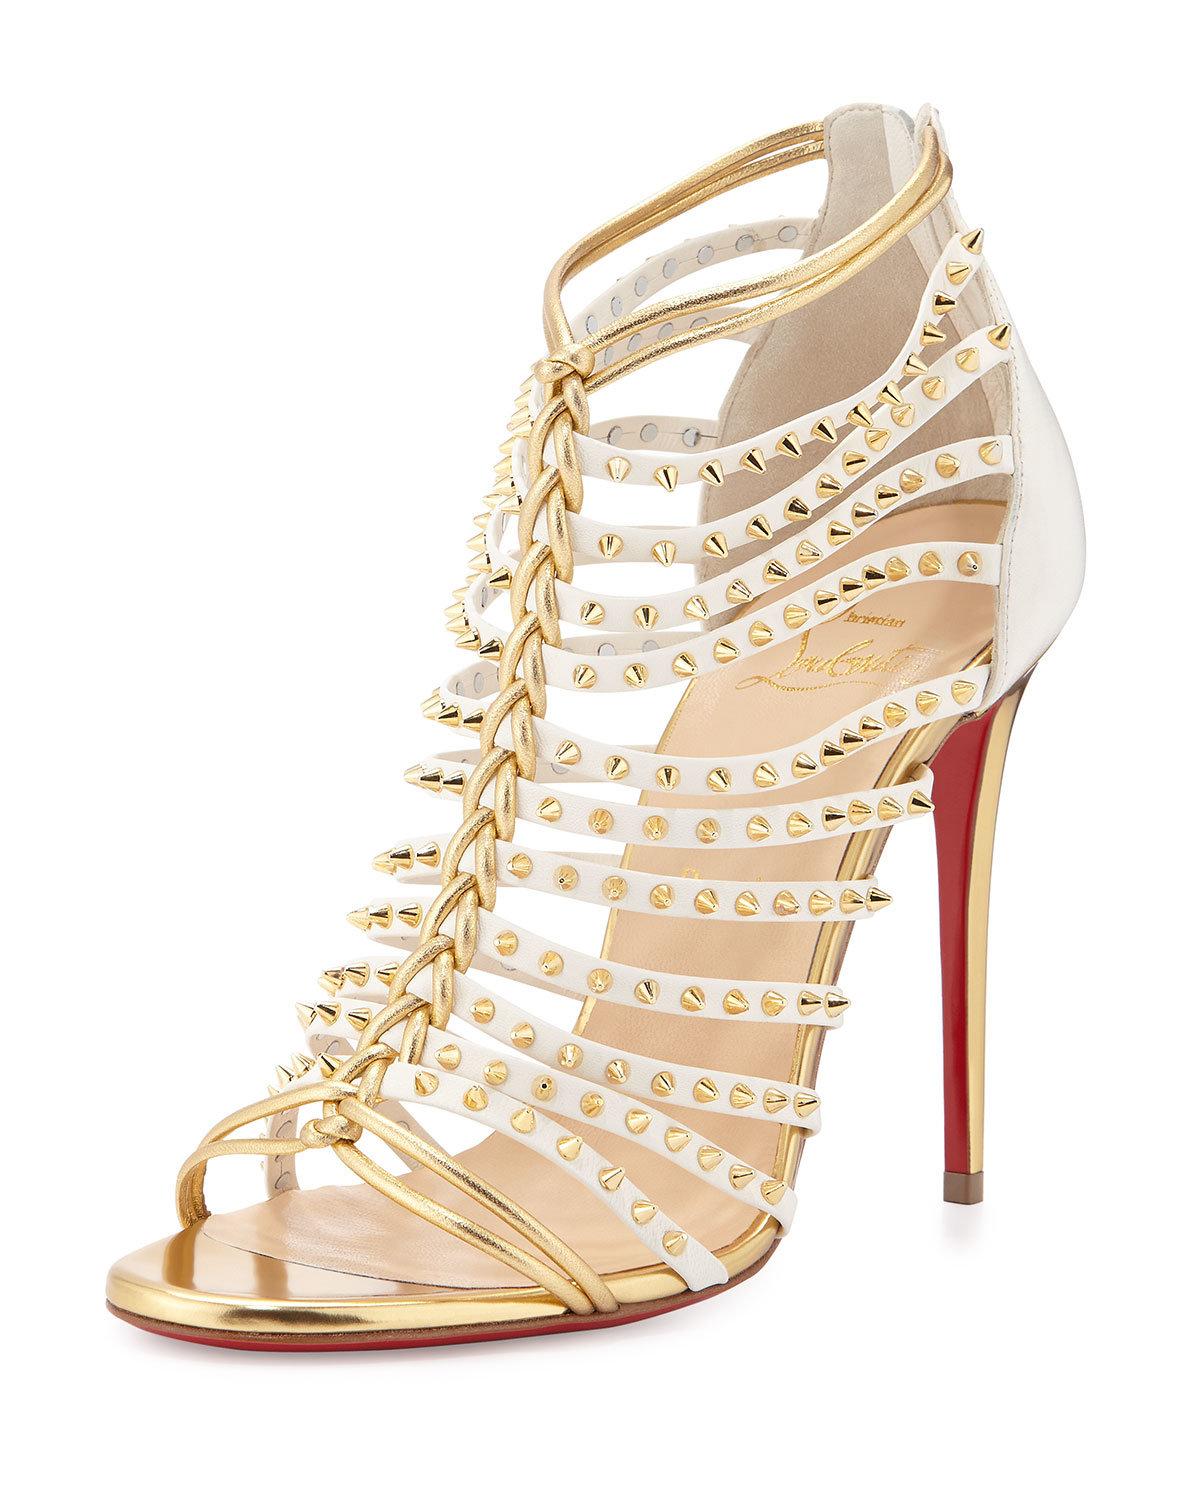 christian louboutin fake - Christian louboutin Millaclou Studded Leather Cage Sandals in Gold ...